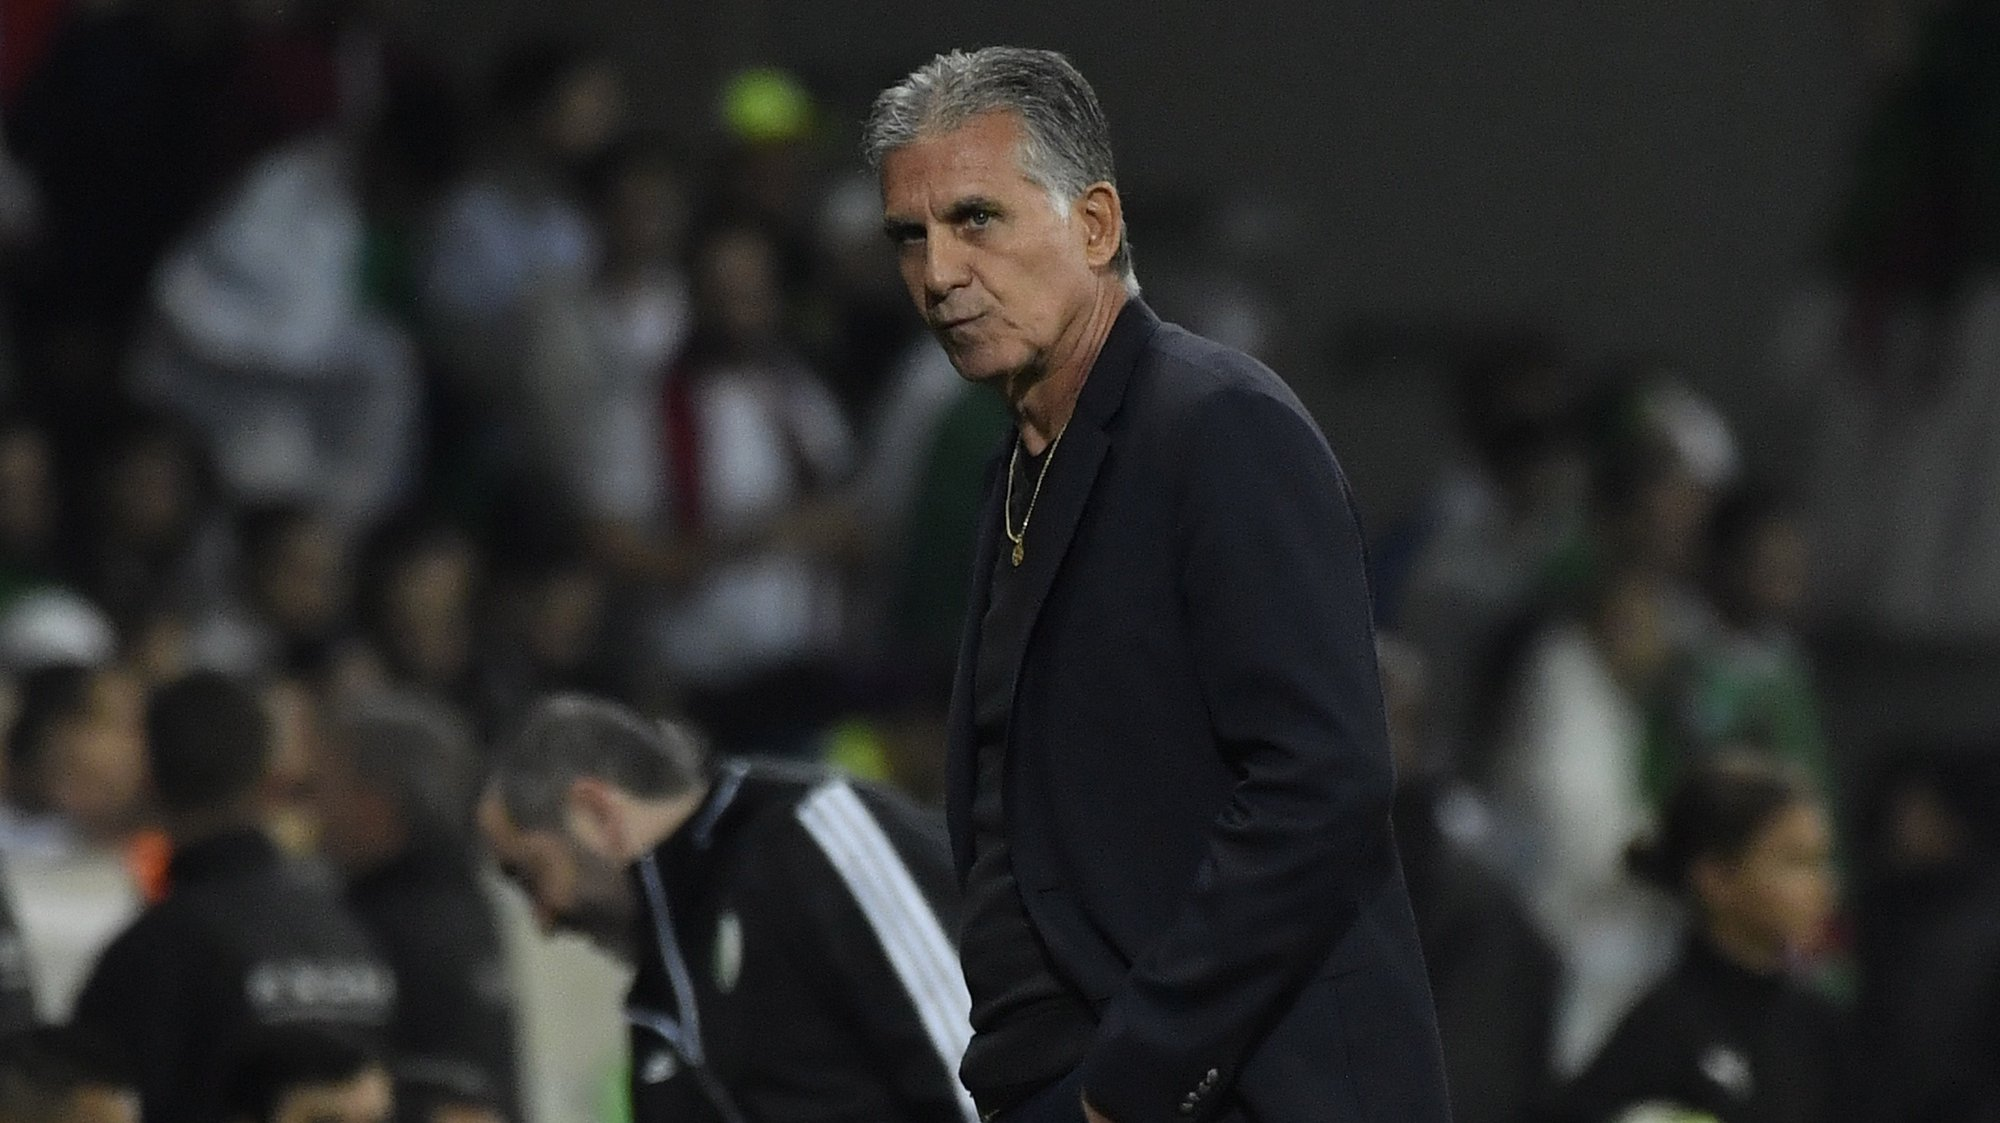 epa07923706 Colombia's headcoach Carlos Queiroz during the friendly international between Algeria vs Colombia at the Pierre Mauroy Stadium in Villeneuve-d'Ascq, near Lille, France, 15 October 2019.  EPA/JULIEN DE ROSA